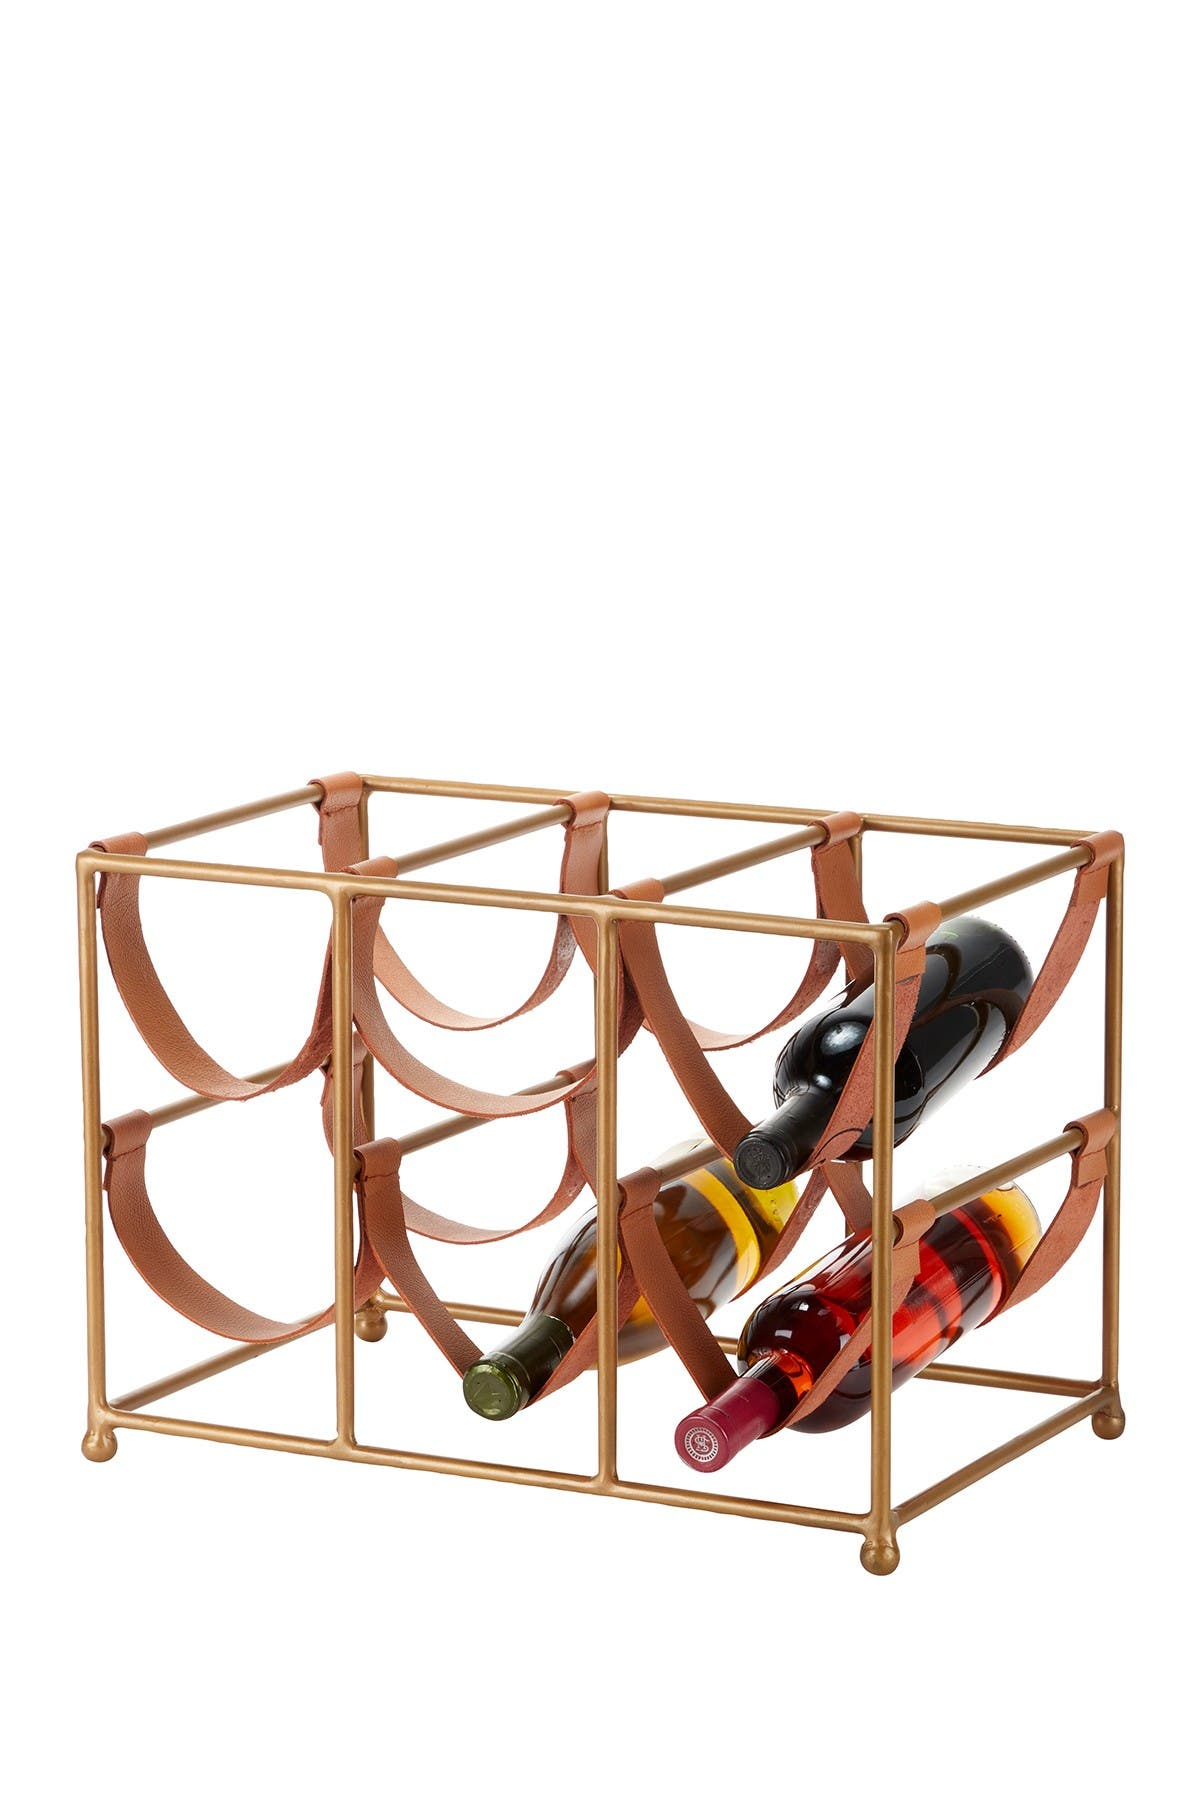 """Image of Willow Row Rectangular Gold Metal And Tan Leather Wine Holder - 17.5"""" X 12"""""""